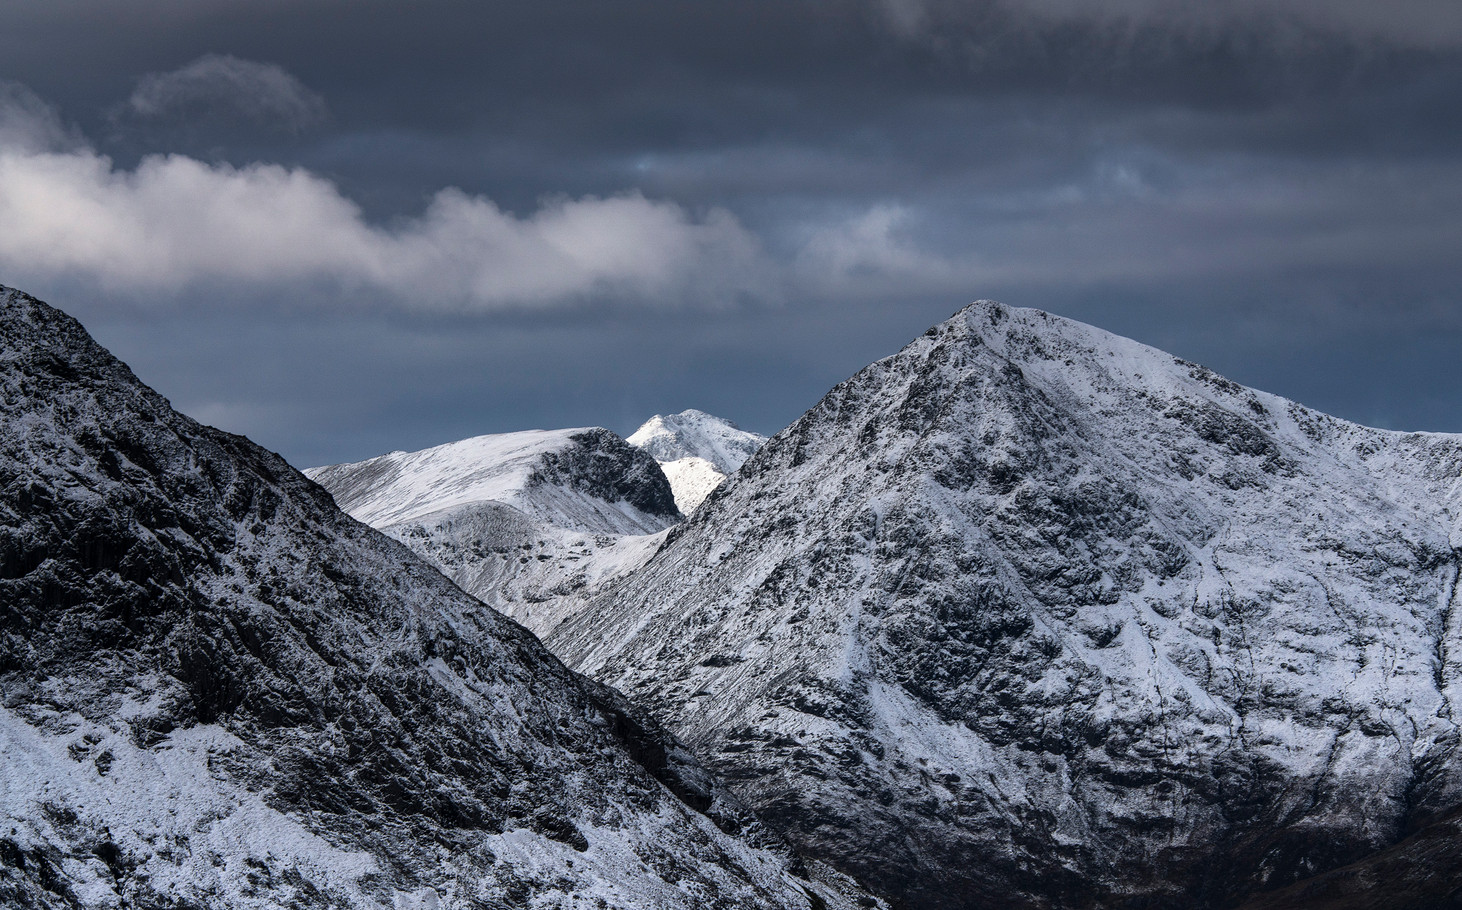 Winter storm over Buchailletive Mhor